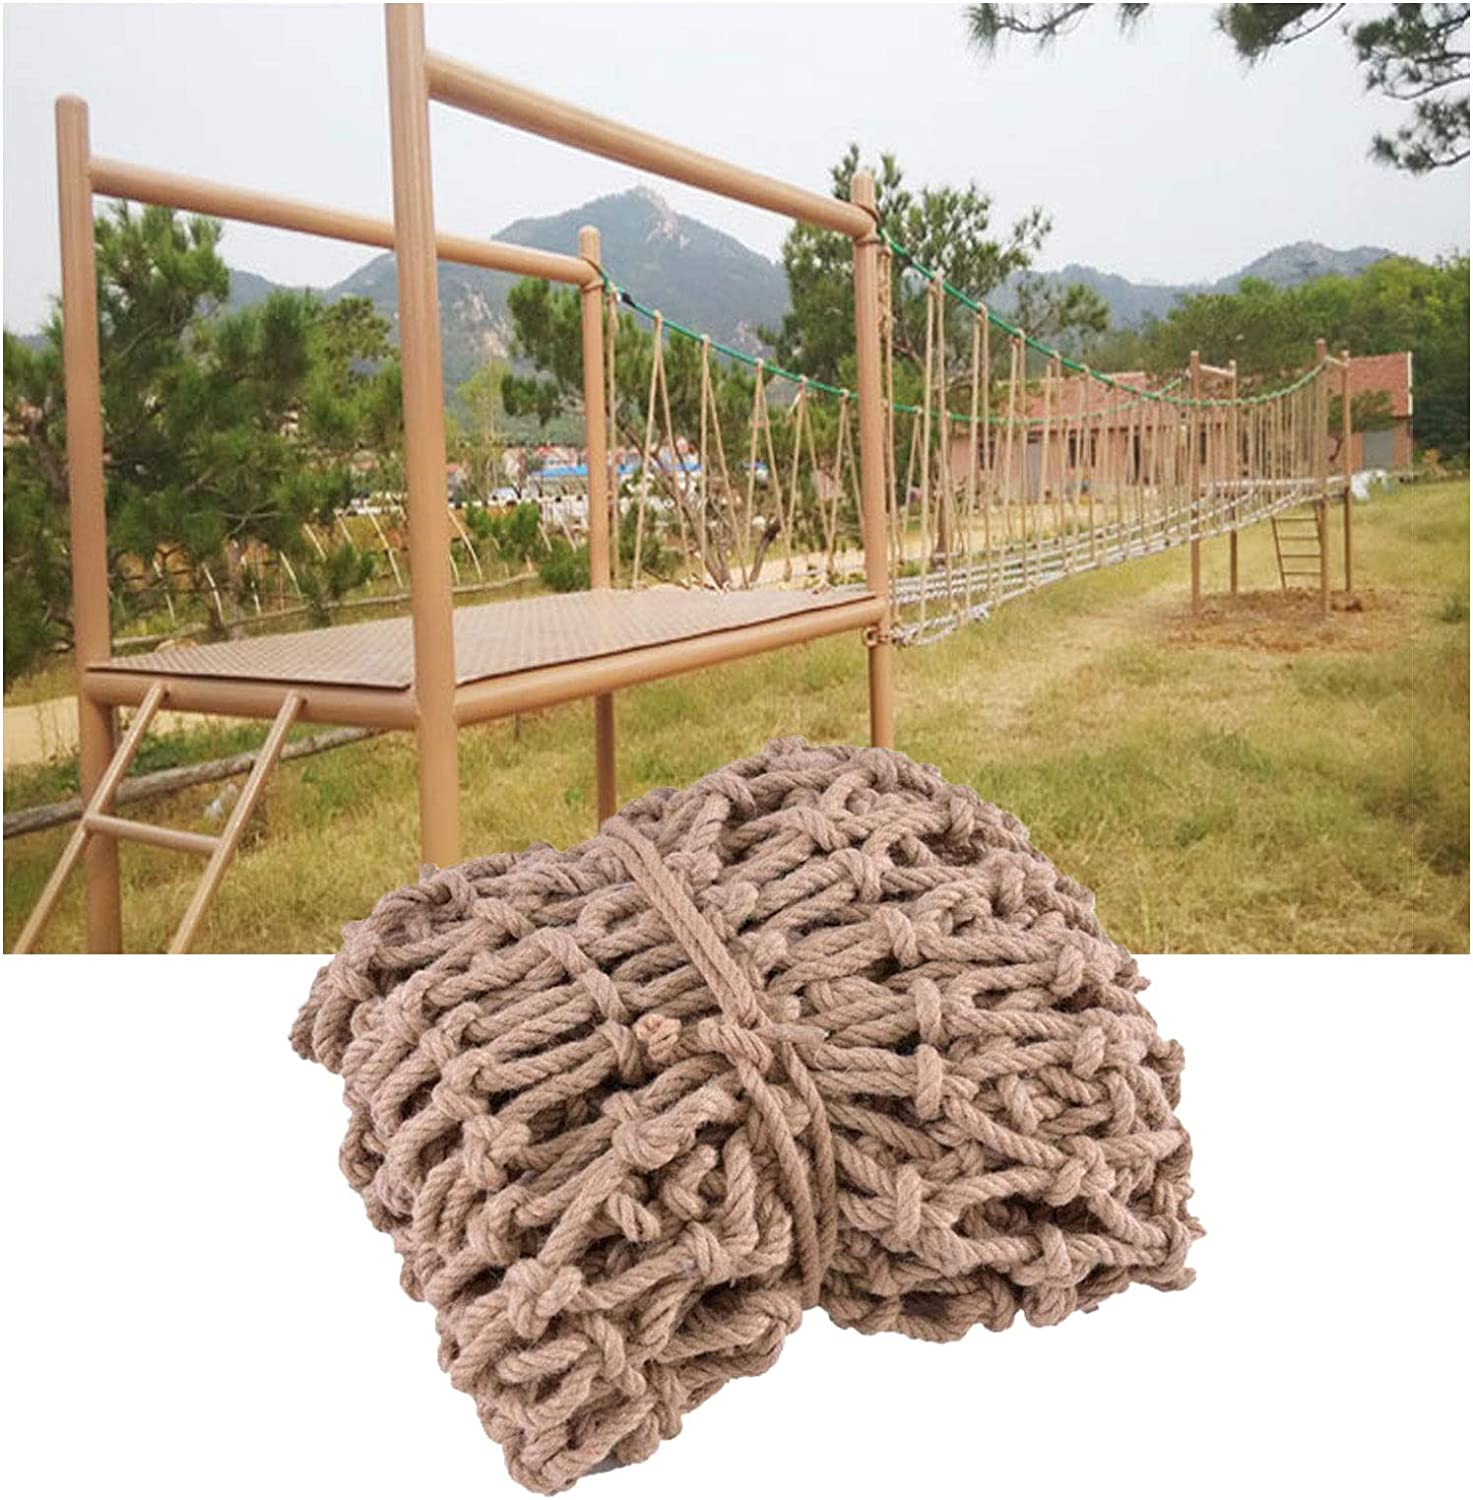 Climbing Net for Kids Cargo Rope Beauty products Truck Safety Ranking TOP1 Traile Ladder